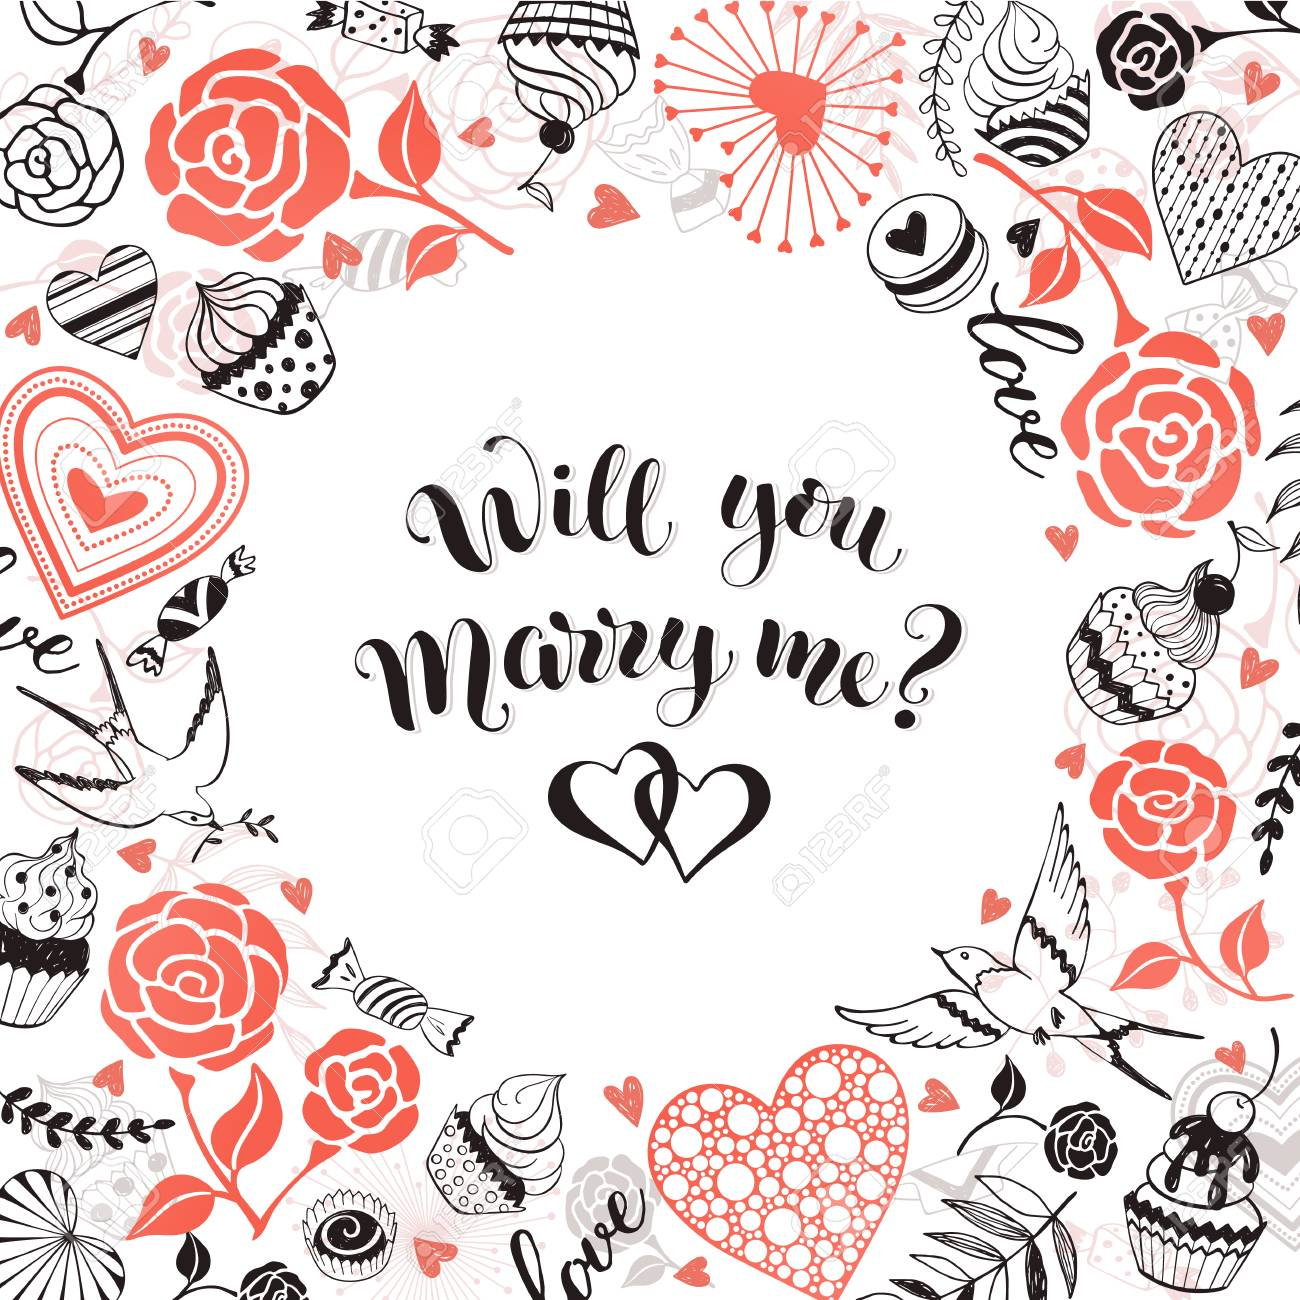 Will You Marry Me Greeting Card Romantic Circle Frame From Hearts